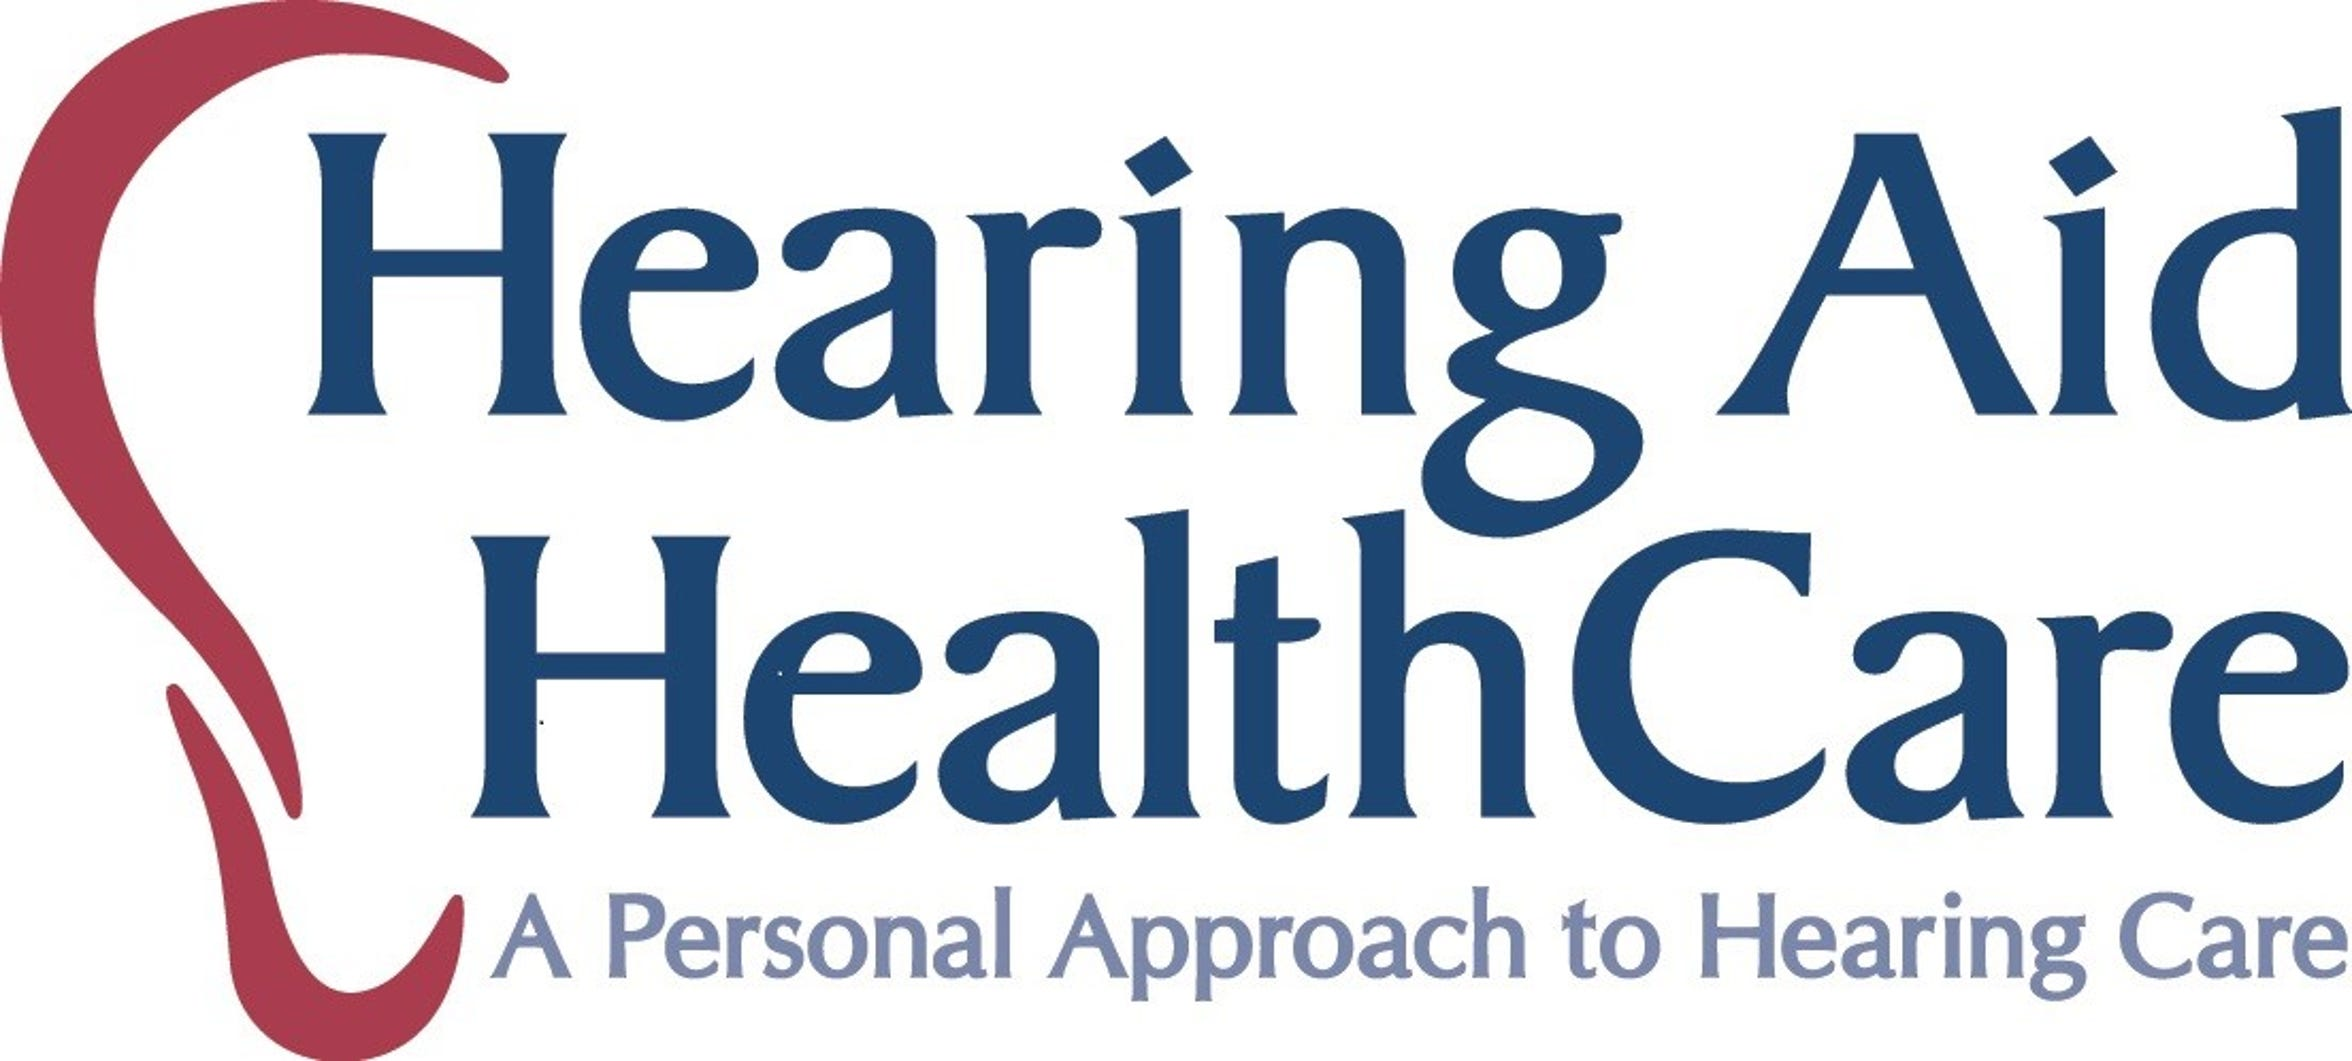 Hearing Aid HealthCare.